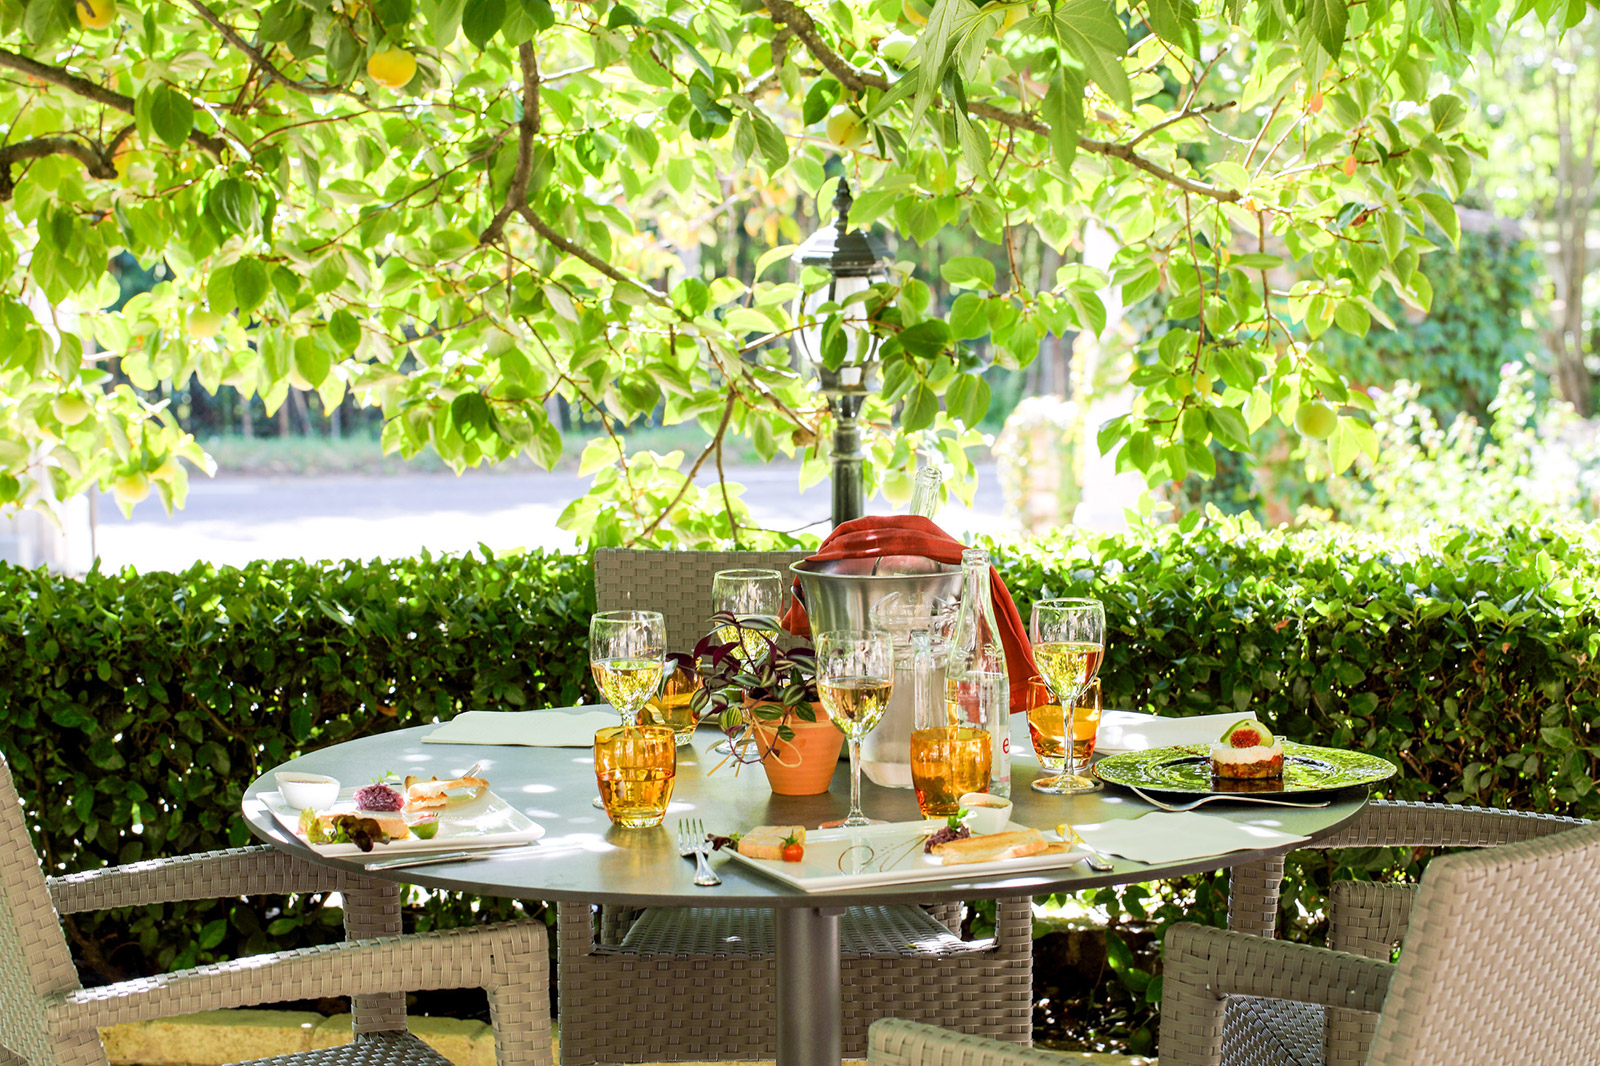 Regional products and traditional cooking on our terrace